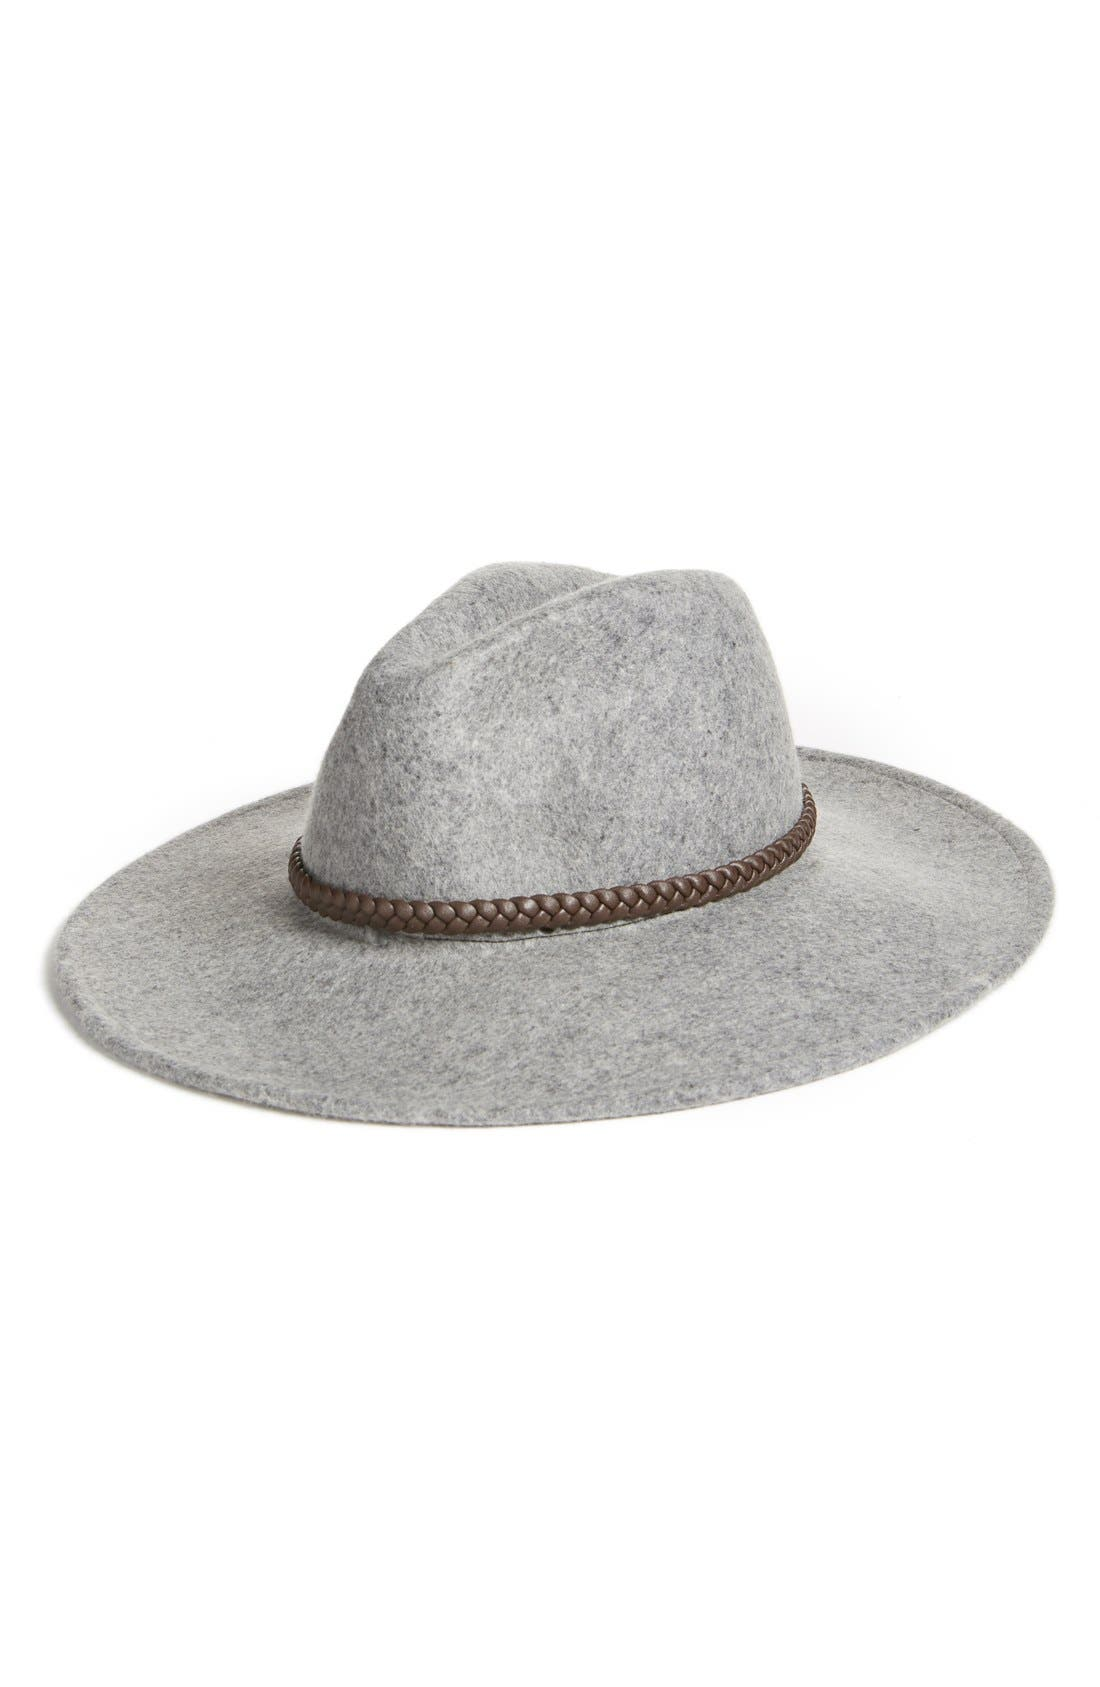 Alternate Image 1 Selected - Billabong Wool Hat with Braided Faux Leather Trim